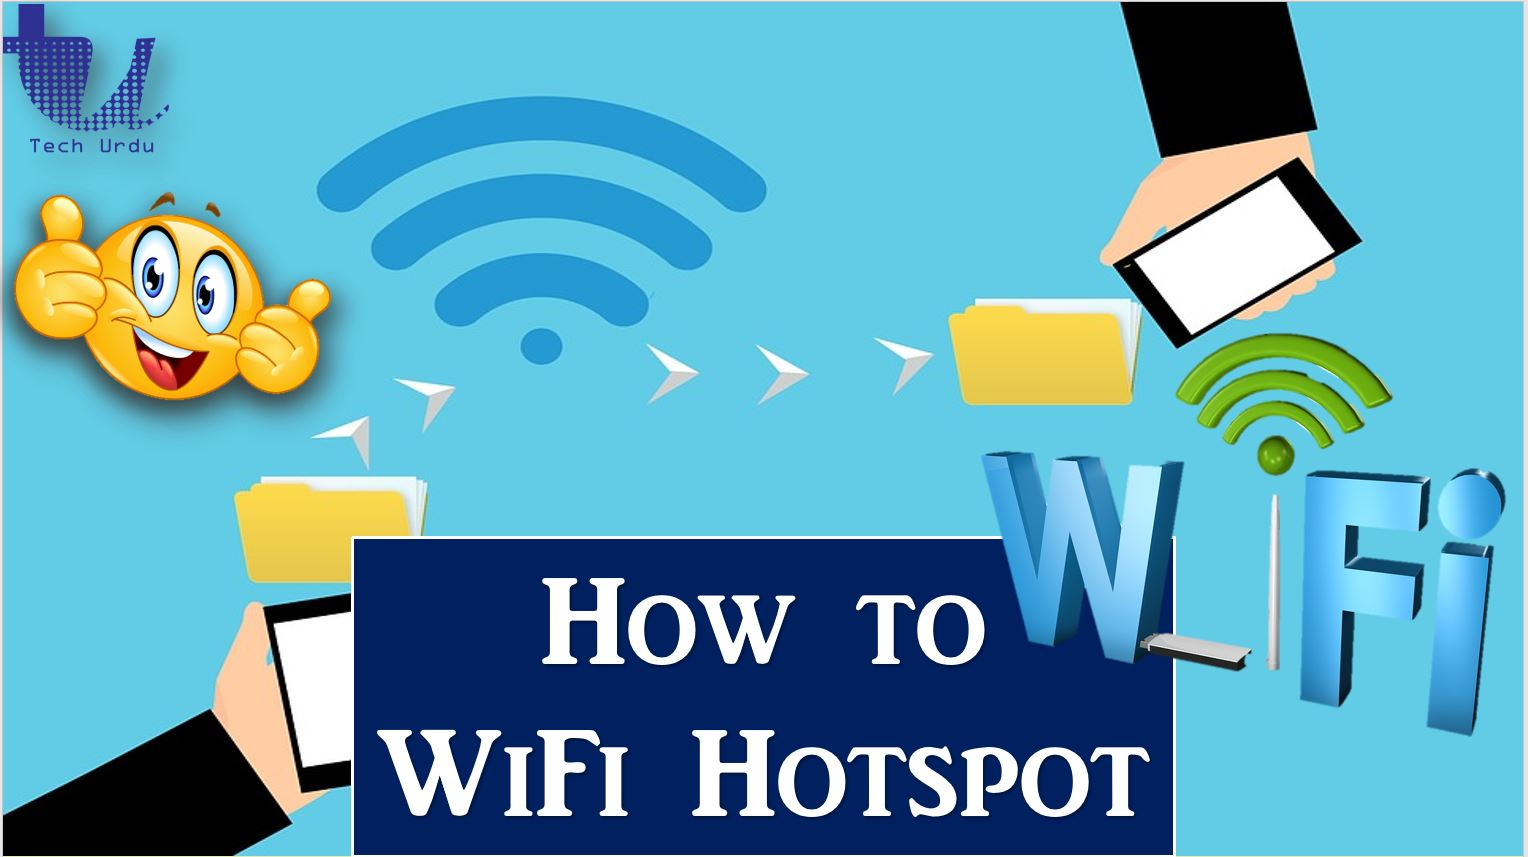 How to Create WiFi Hotspot to Share Mobile Internet?